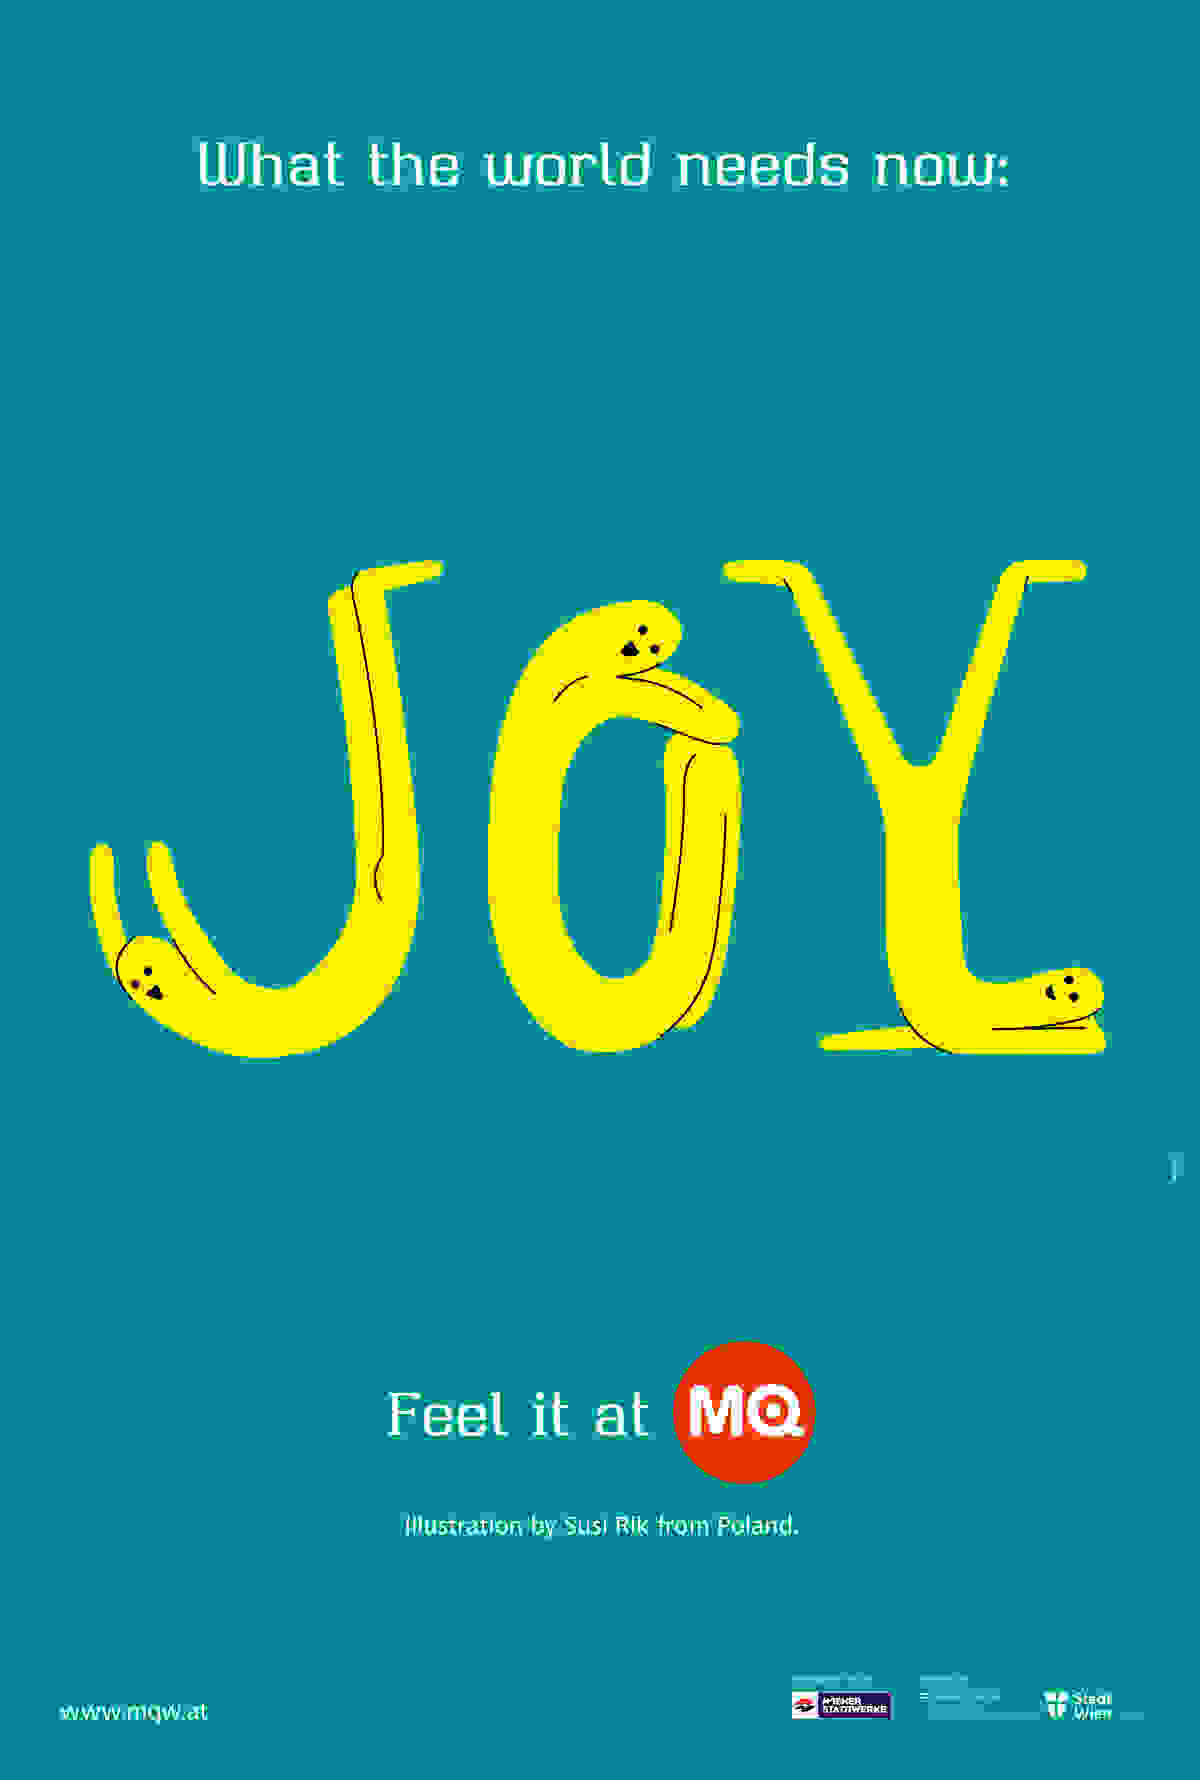 MQ WINTER 2020 OOH citylight JOY 1200x1780px